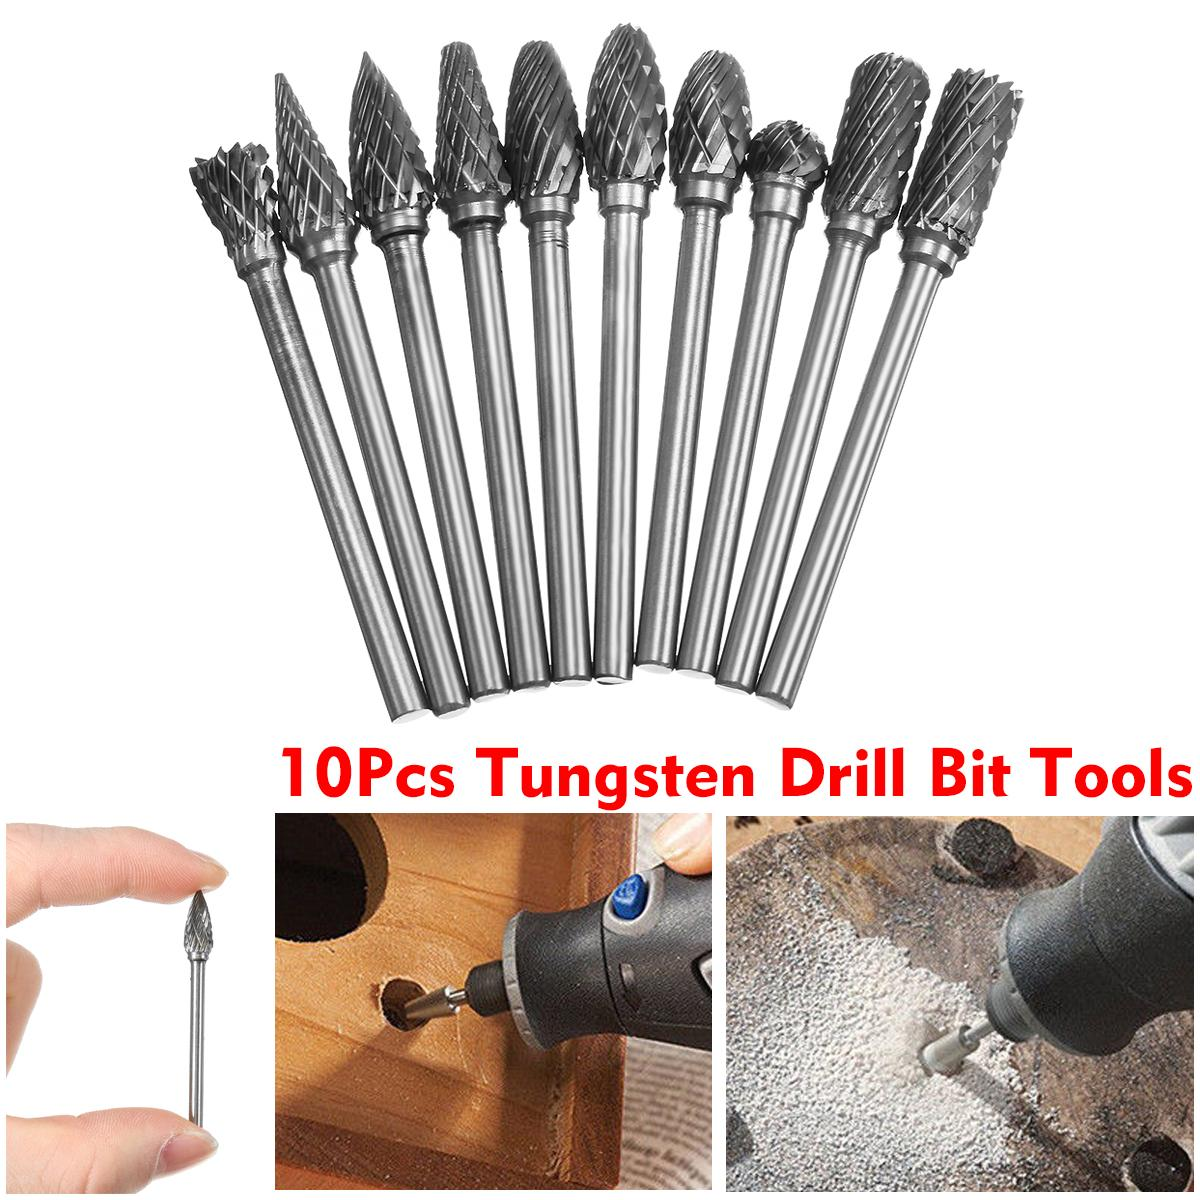 10 Pcs Tungsten Carbide Steel Burr Rotary Drills Cutter File Set Shank Polishing